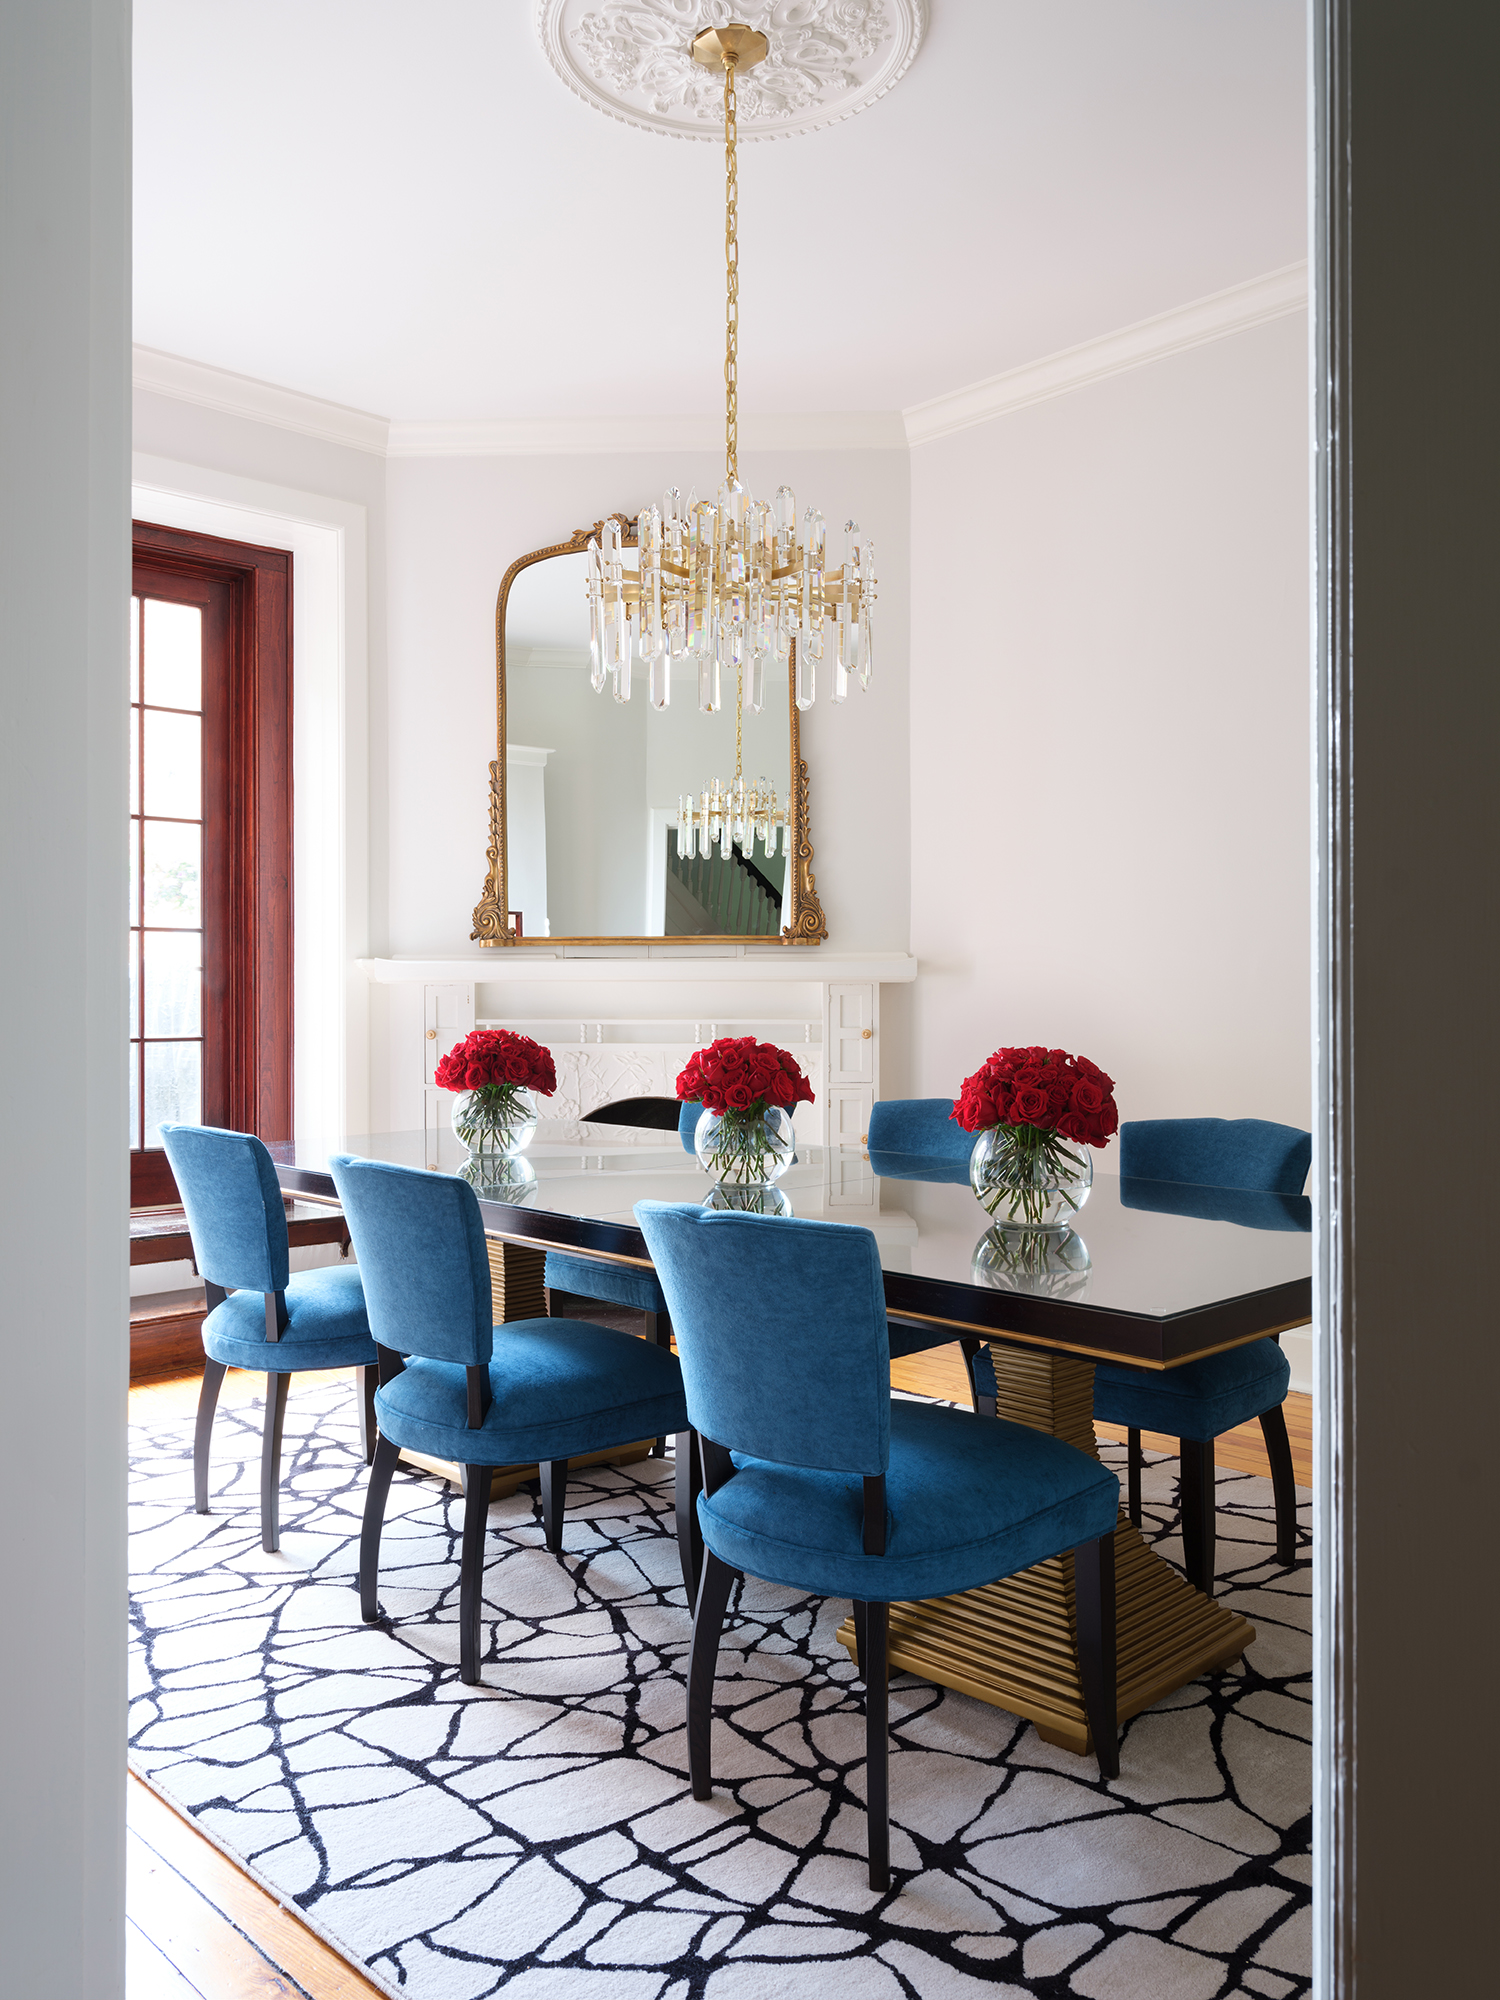 Historic dining room with modern details